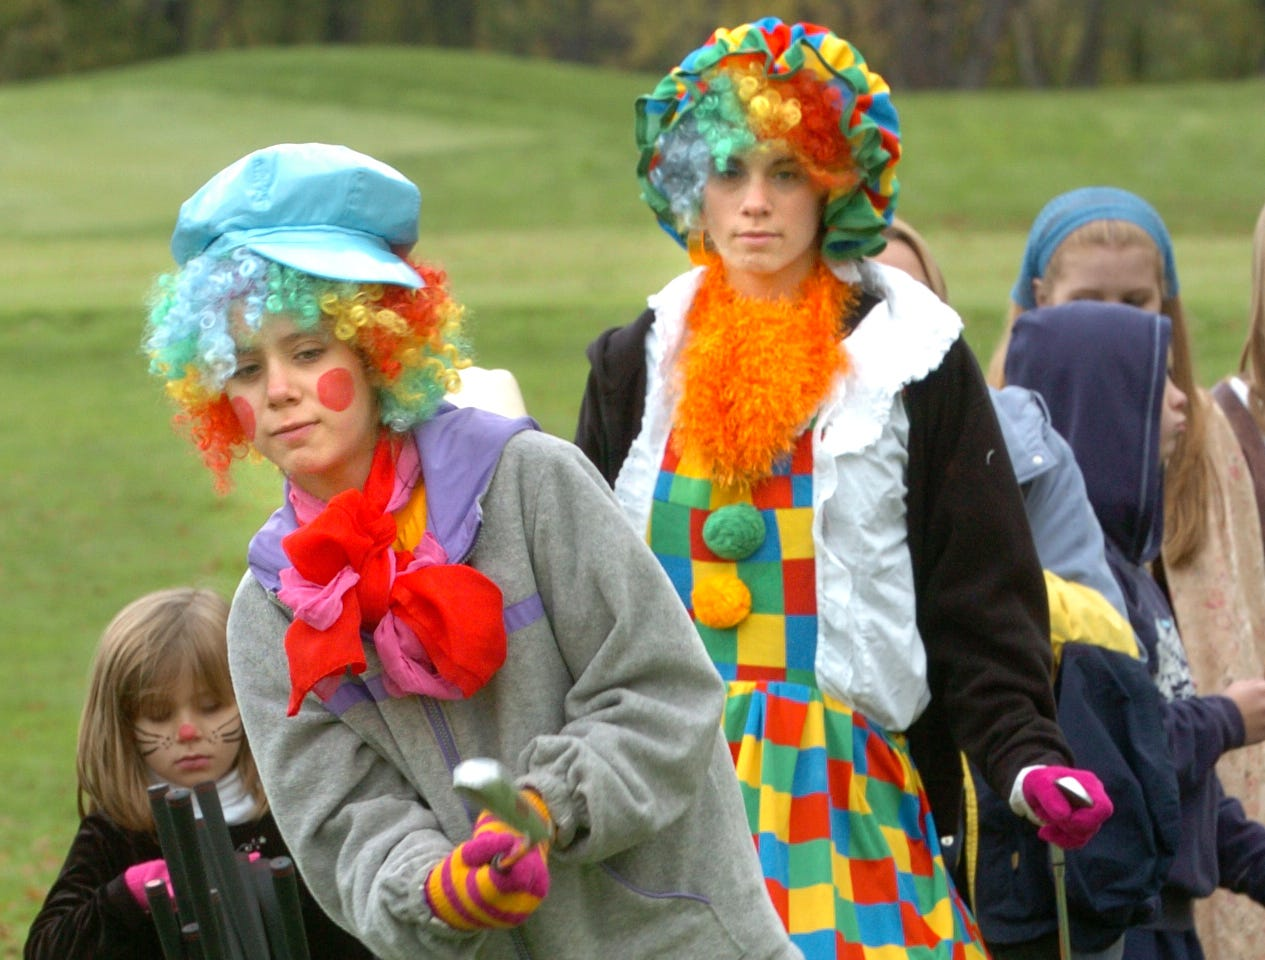 2005: Jenna Harmon, 10, of Endicott practices her chip shot while donning a clown costume Saturday morning during The First Tee of Hiawatha Landing's Halloween party. The event included skills training, a pumpkin run and a costume contest.